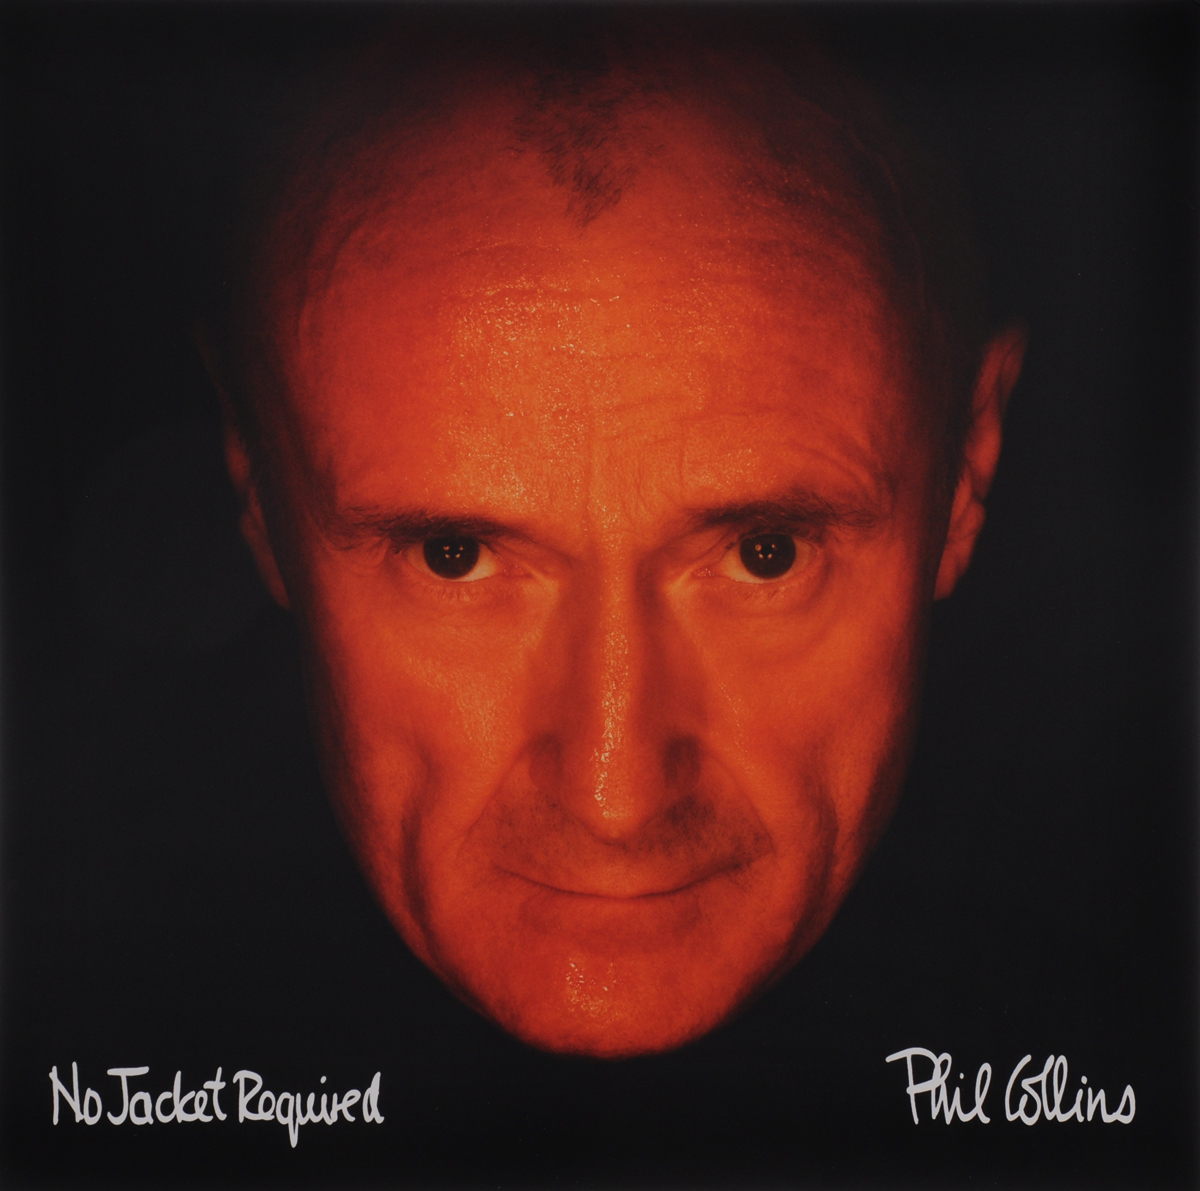 Фил Коллинз Phil Collins. No Jacket Required (LP) фил коллинз phil collins testify 2 lp